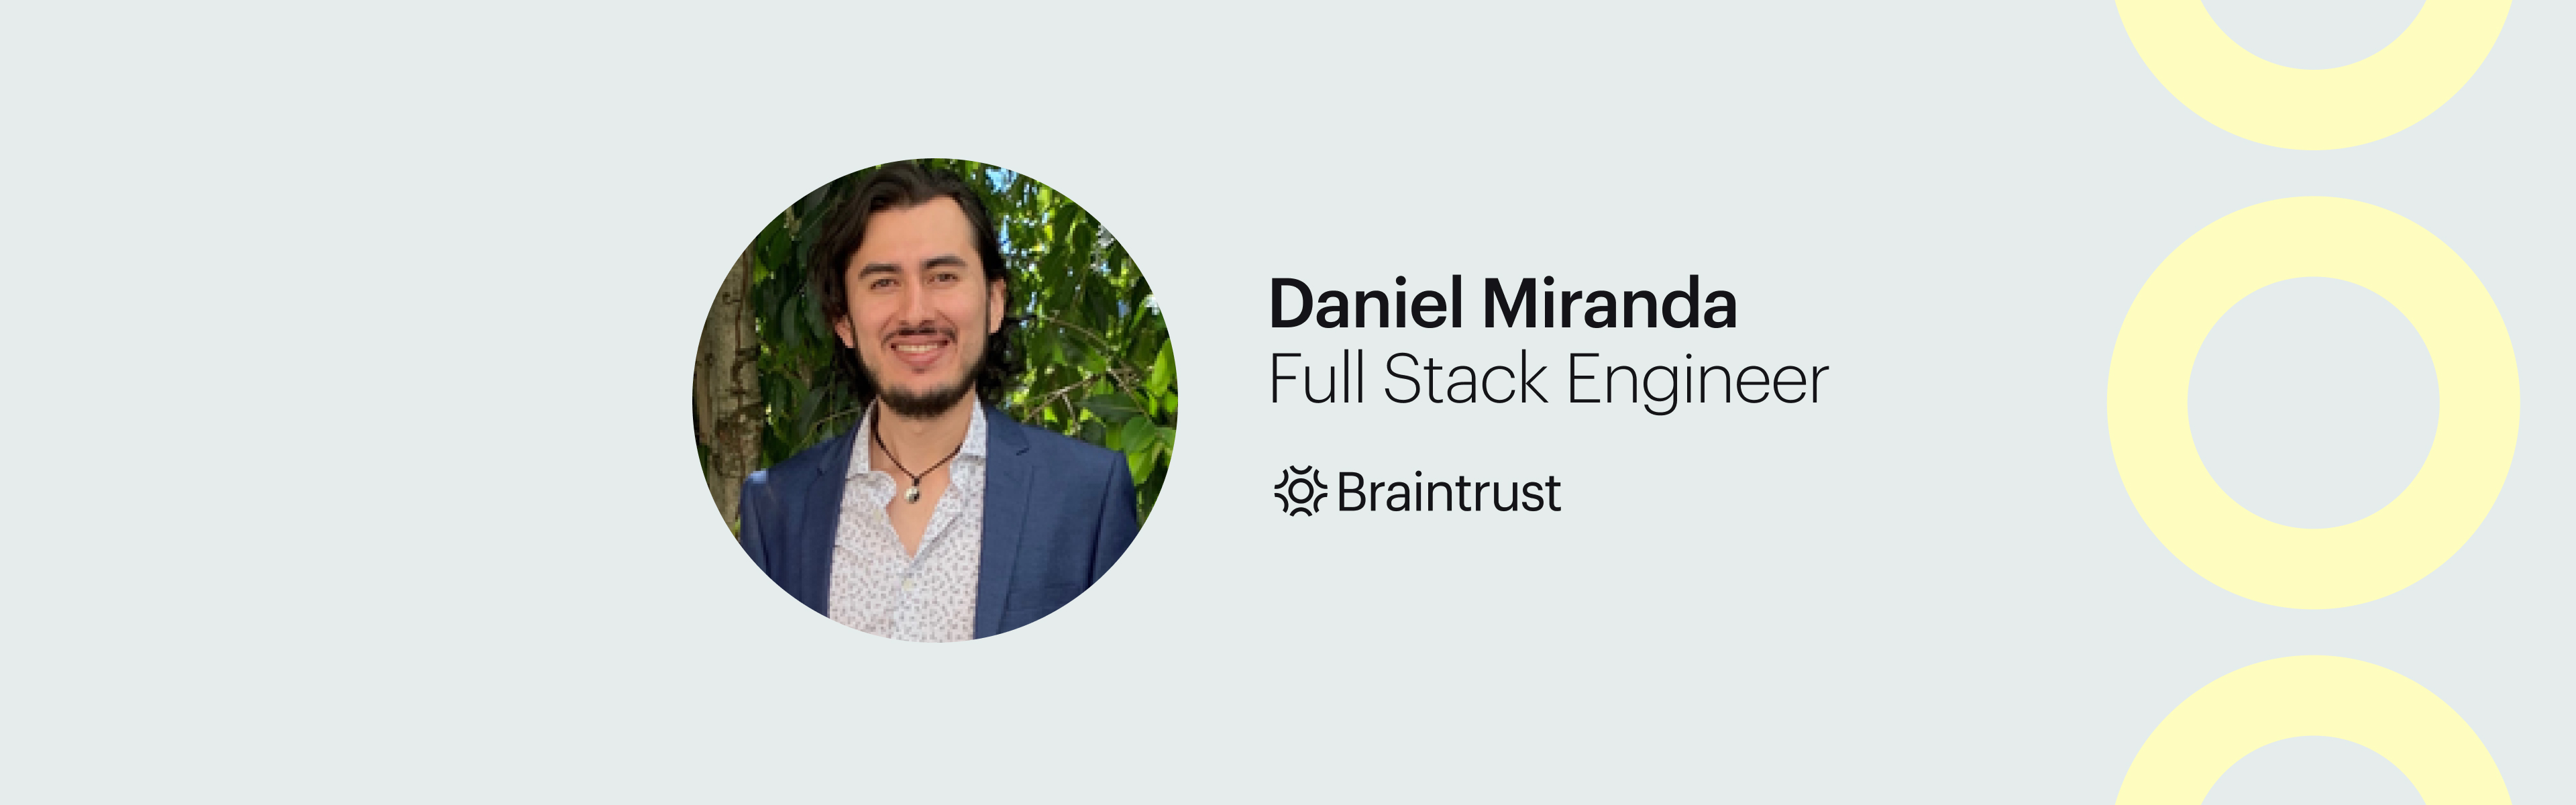 Talent Feature_ How Daniel Miranda, Full Stack Engineer, Created Real Business Impact for His Client blog banner